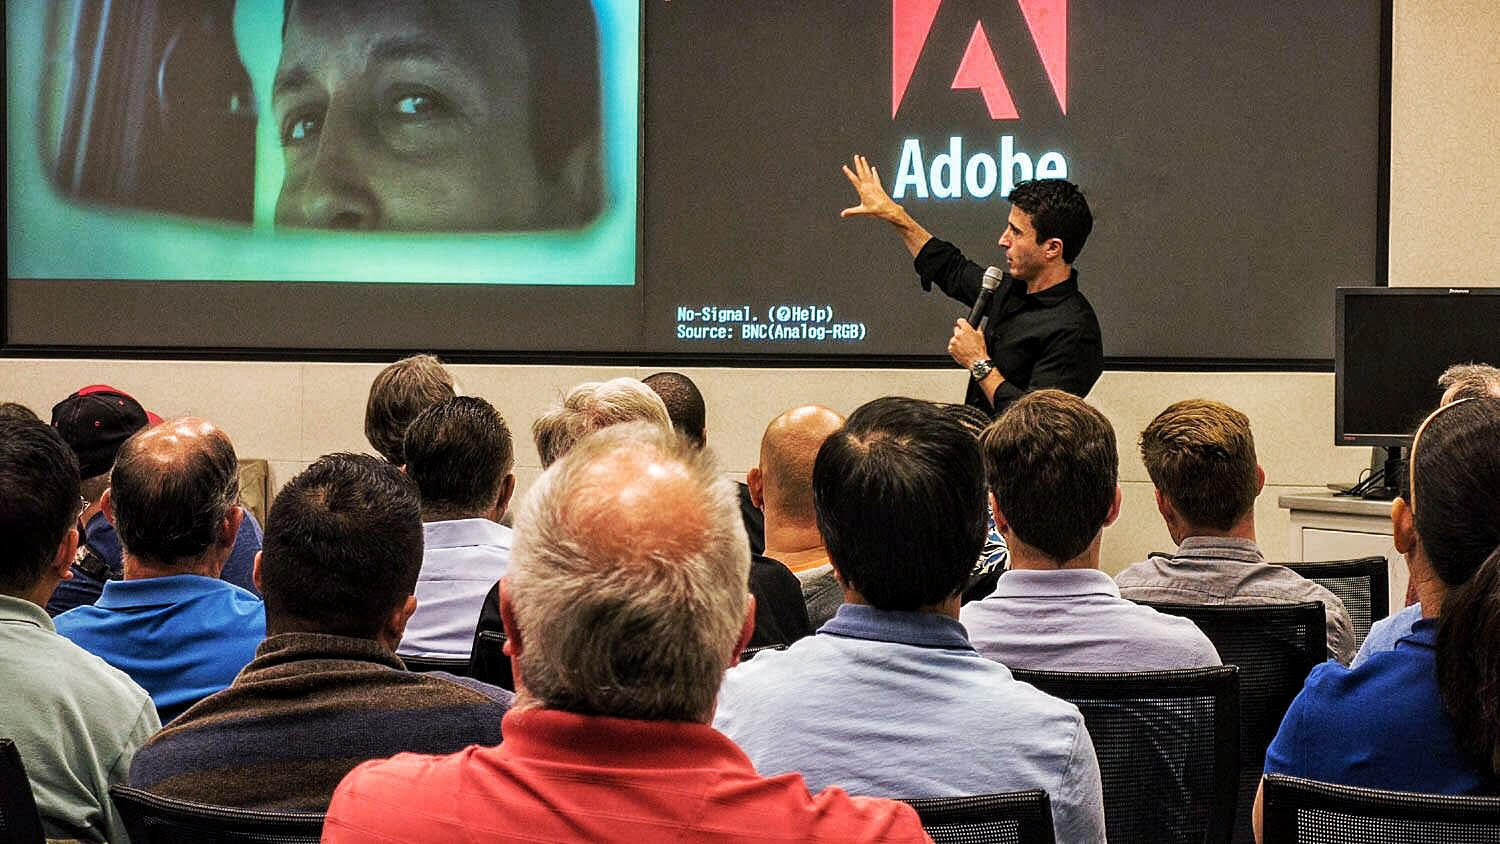 Copy of Kevin Shahinian | Adobe Supermeet